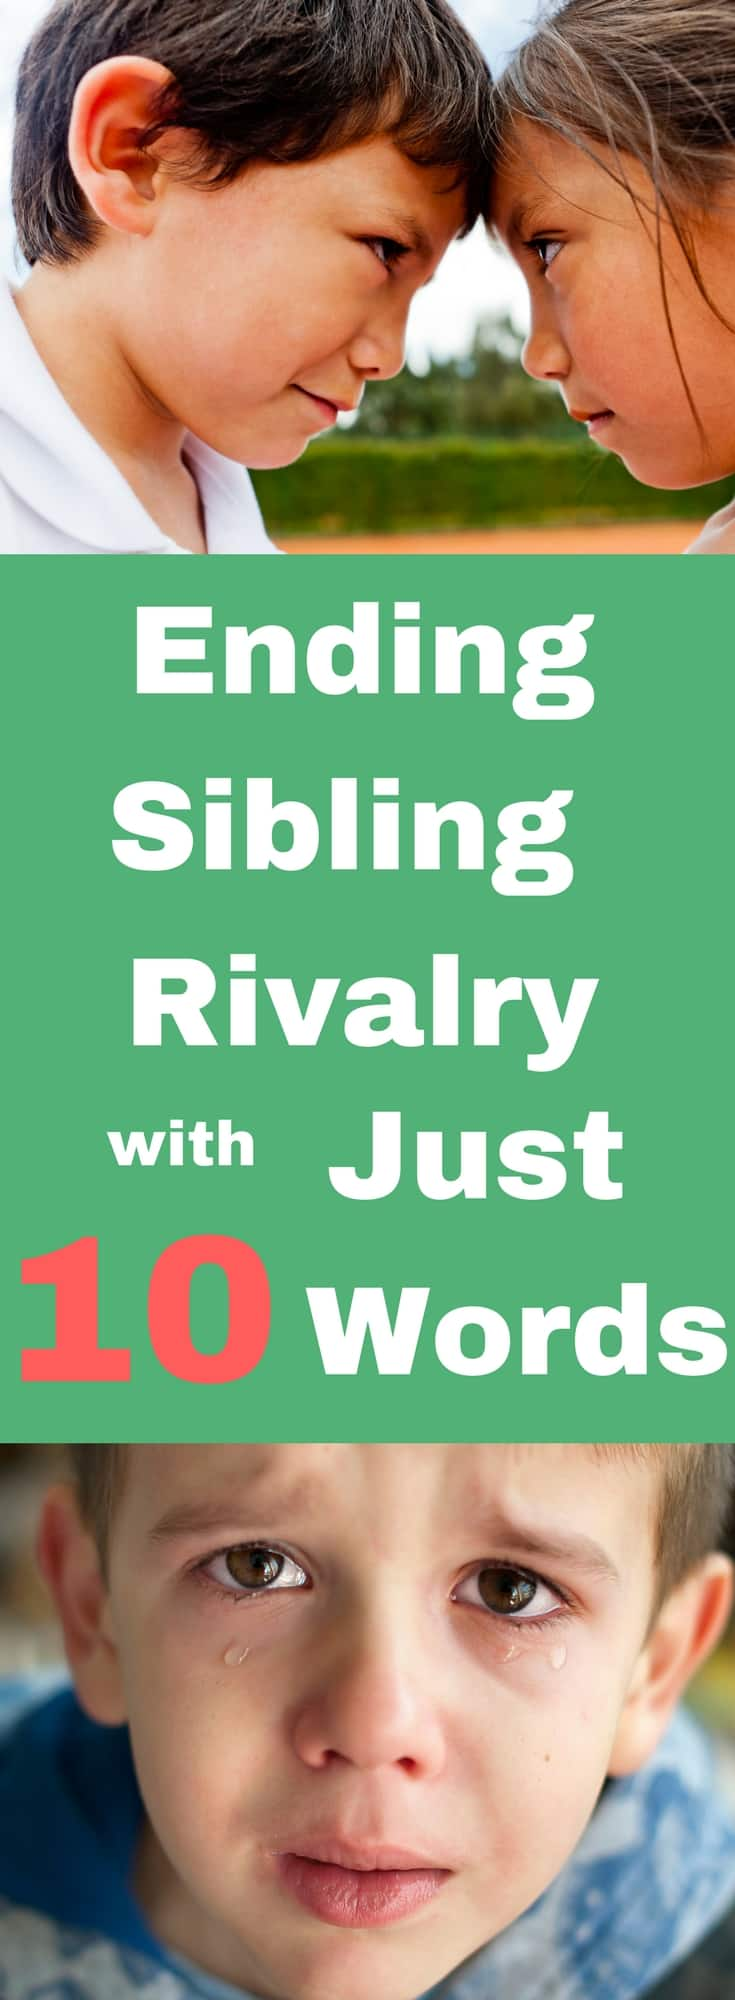 Ditch the Sibling rivalry books, Do this instead